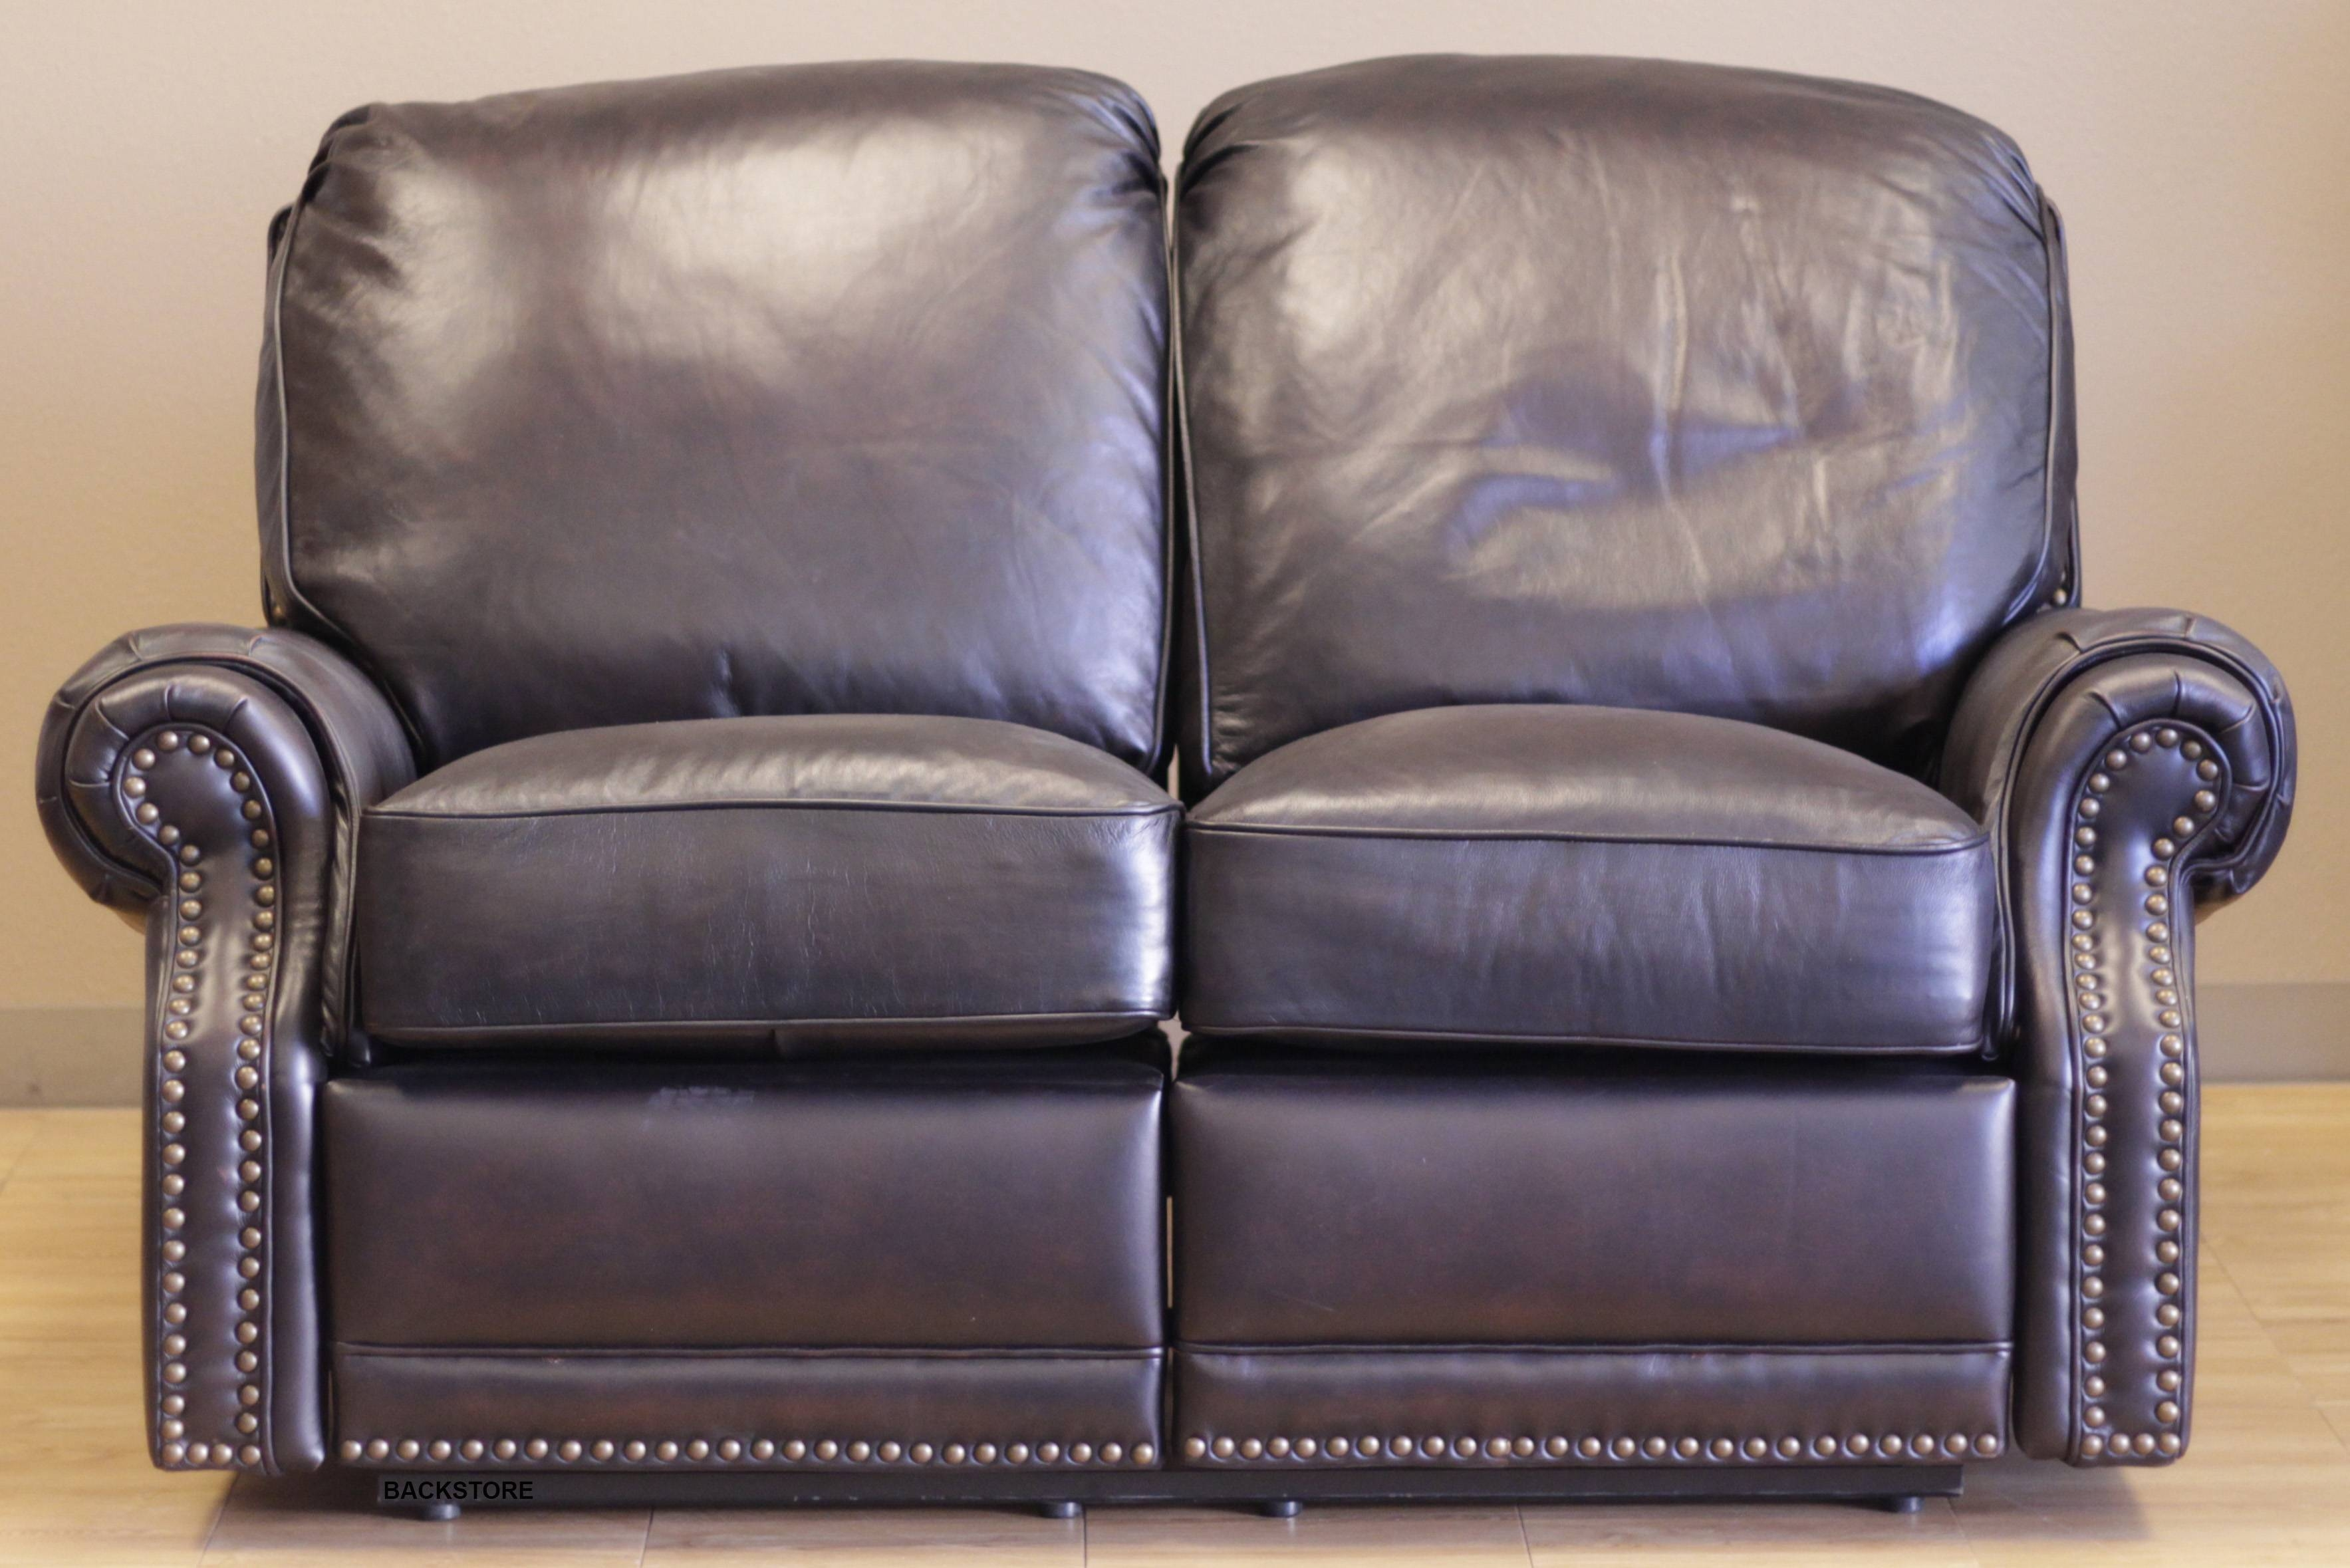 Barcalounger Premier Ii Leather 2 Seat Loveseat Sofa - Leather 2 with Barcalounger Sofas (Image 11 of 15)